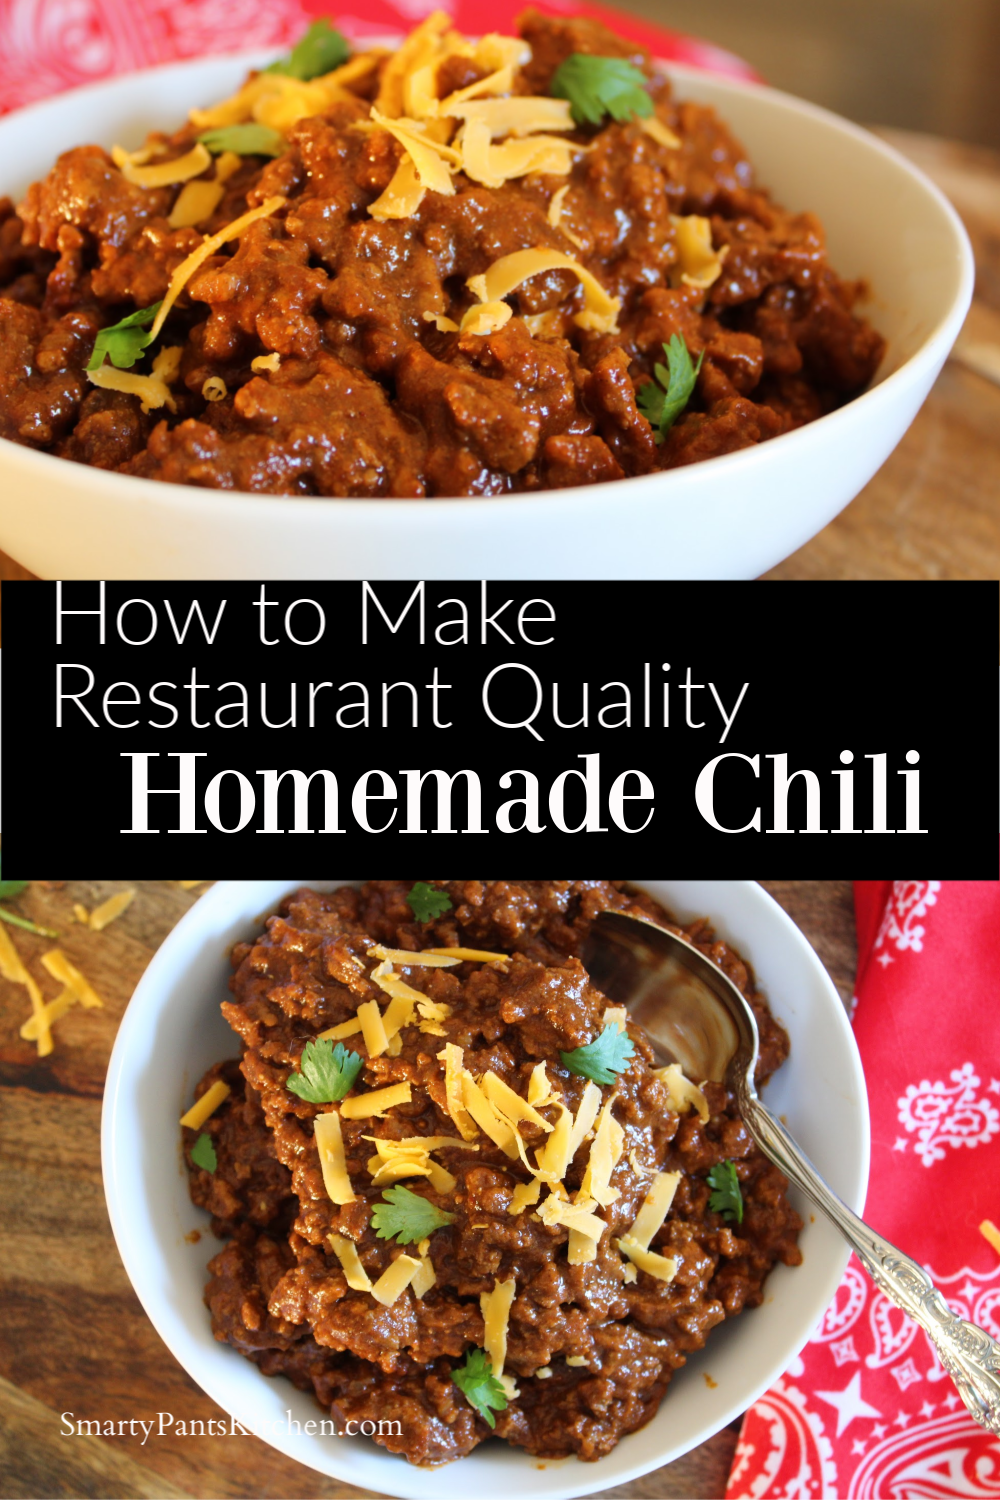 Foolproof Authentic Texas Chili Recipe Chilirecipe Chilinobeans Southerncooking Southern Chili Recipe Texas Chili Easy Homemade Chili Recipe